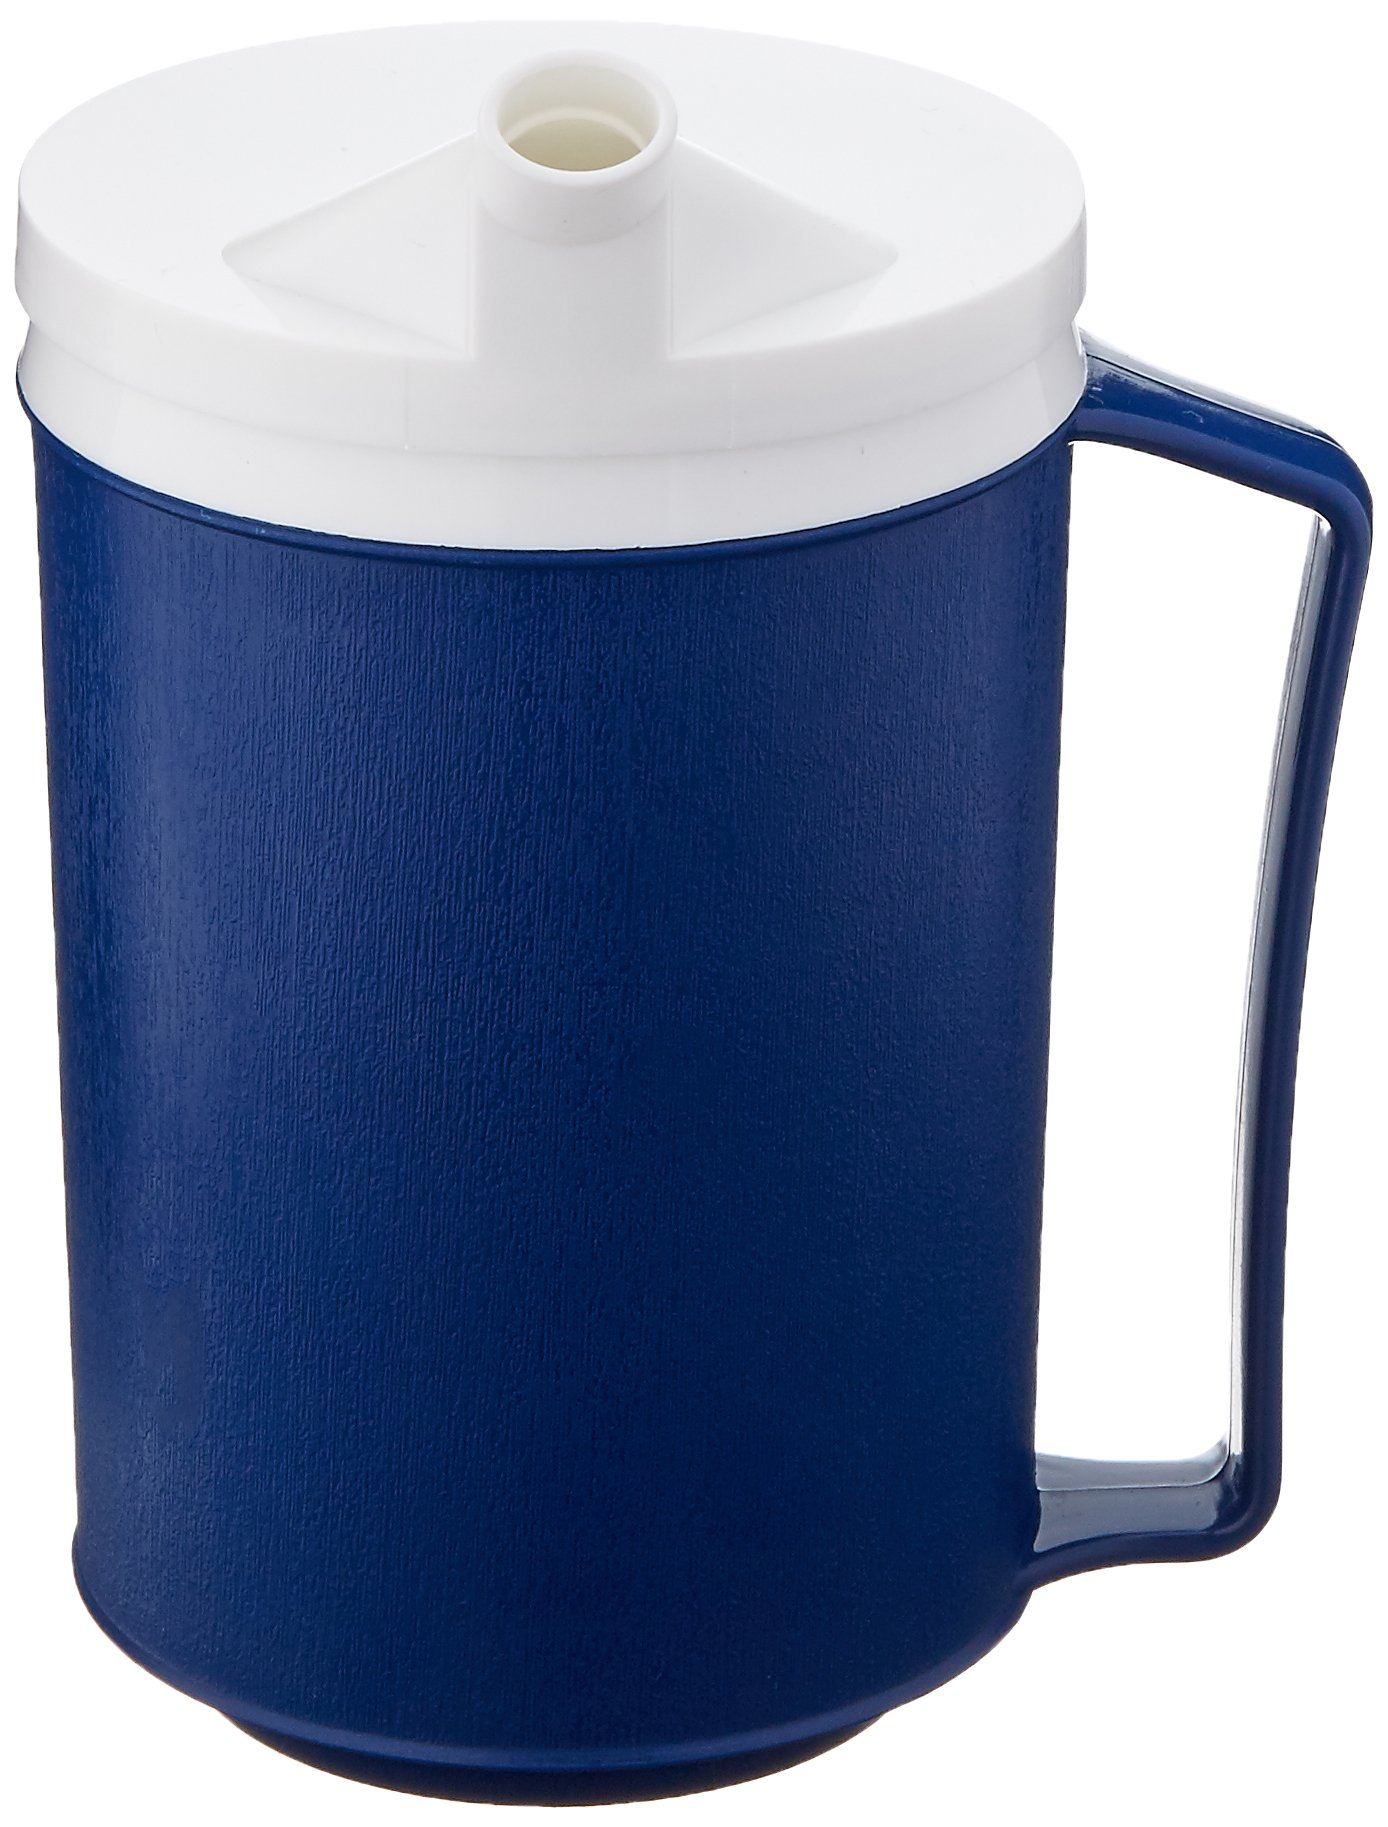 Sammons Preston Insulated Mug with Snorkel Lid, Durable Container for Hot and Cold Liquid Beverages, Tea, Smoothies, 12 oz Blue Travel Coffee Cup with Lid for Elderly, Disabled, Handicapped, Weak Grip by Sammons Preston